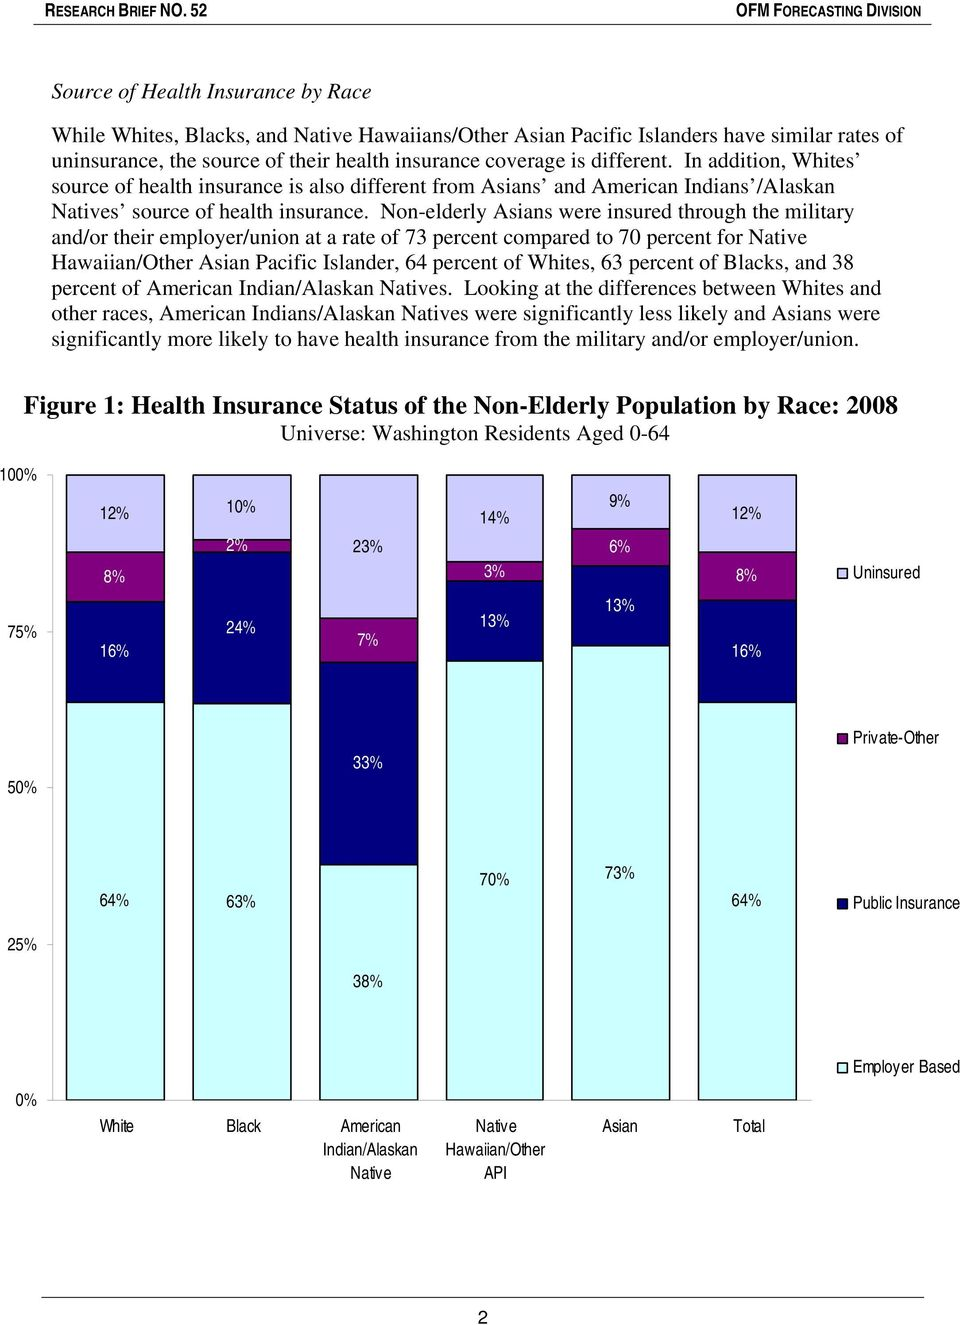 Non-elderly Asians were insured through the military and/or their employer/union at a rate of 73 percent compared to 70 percent for Native Hawaiian/Other Asian Pacific Islander, 64 percent of Whites,